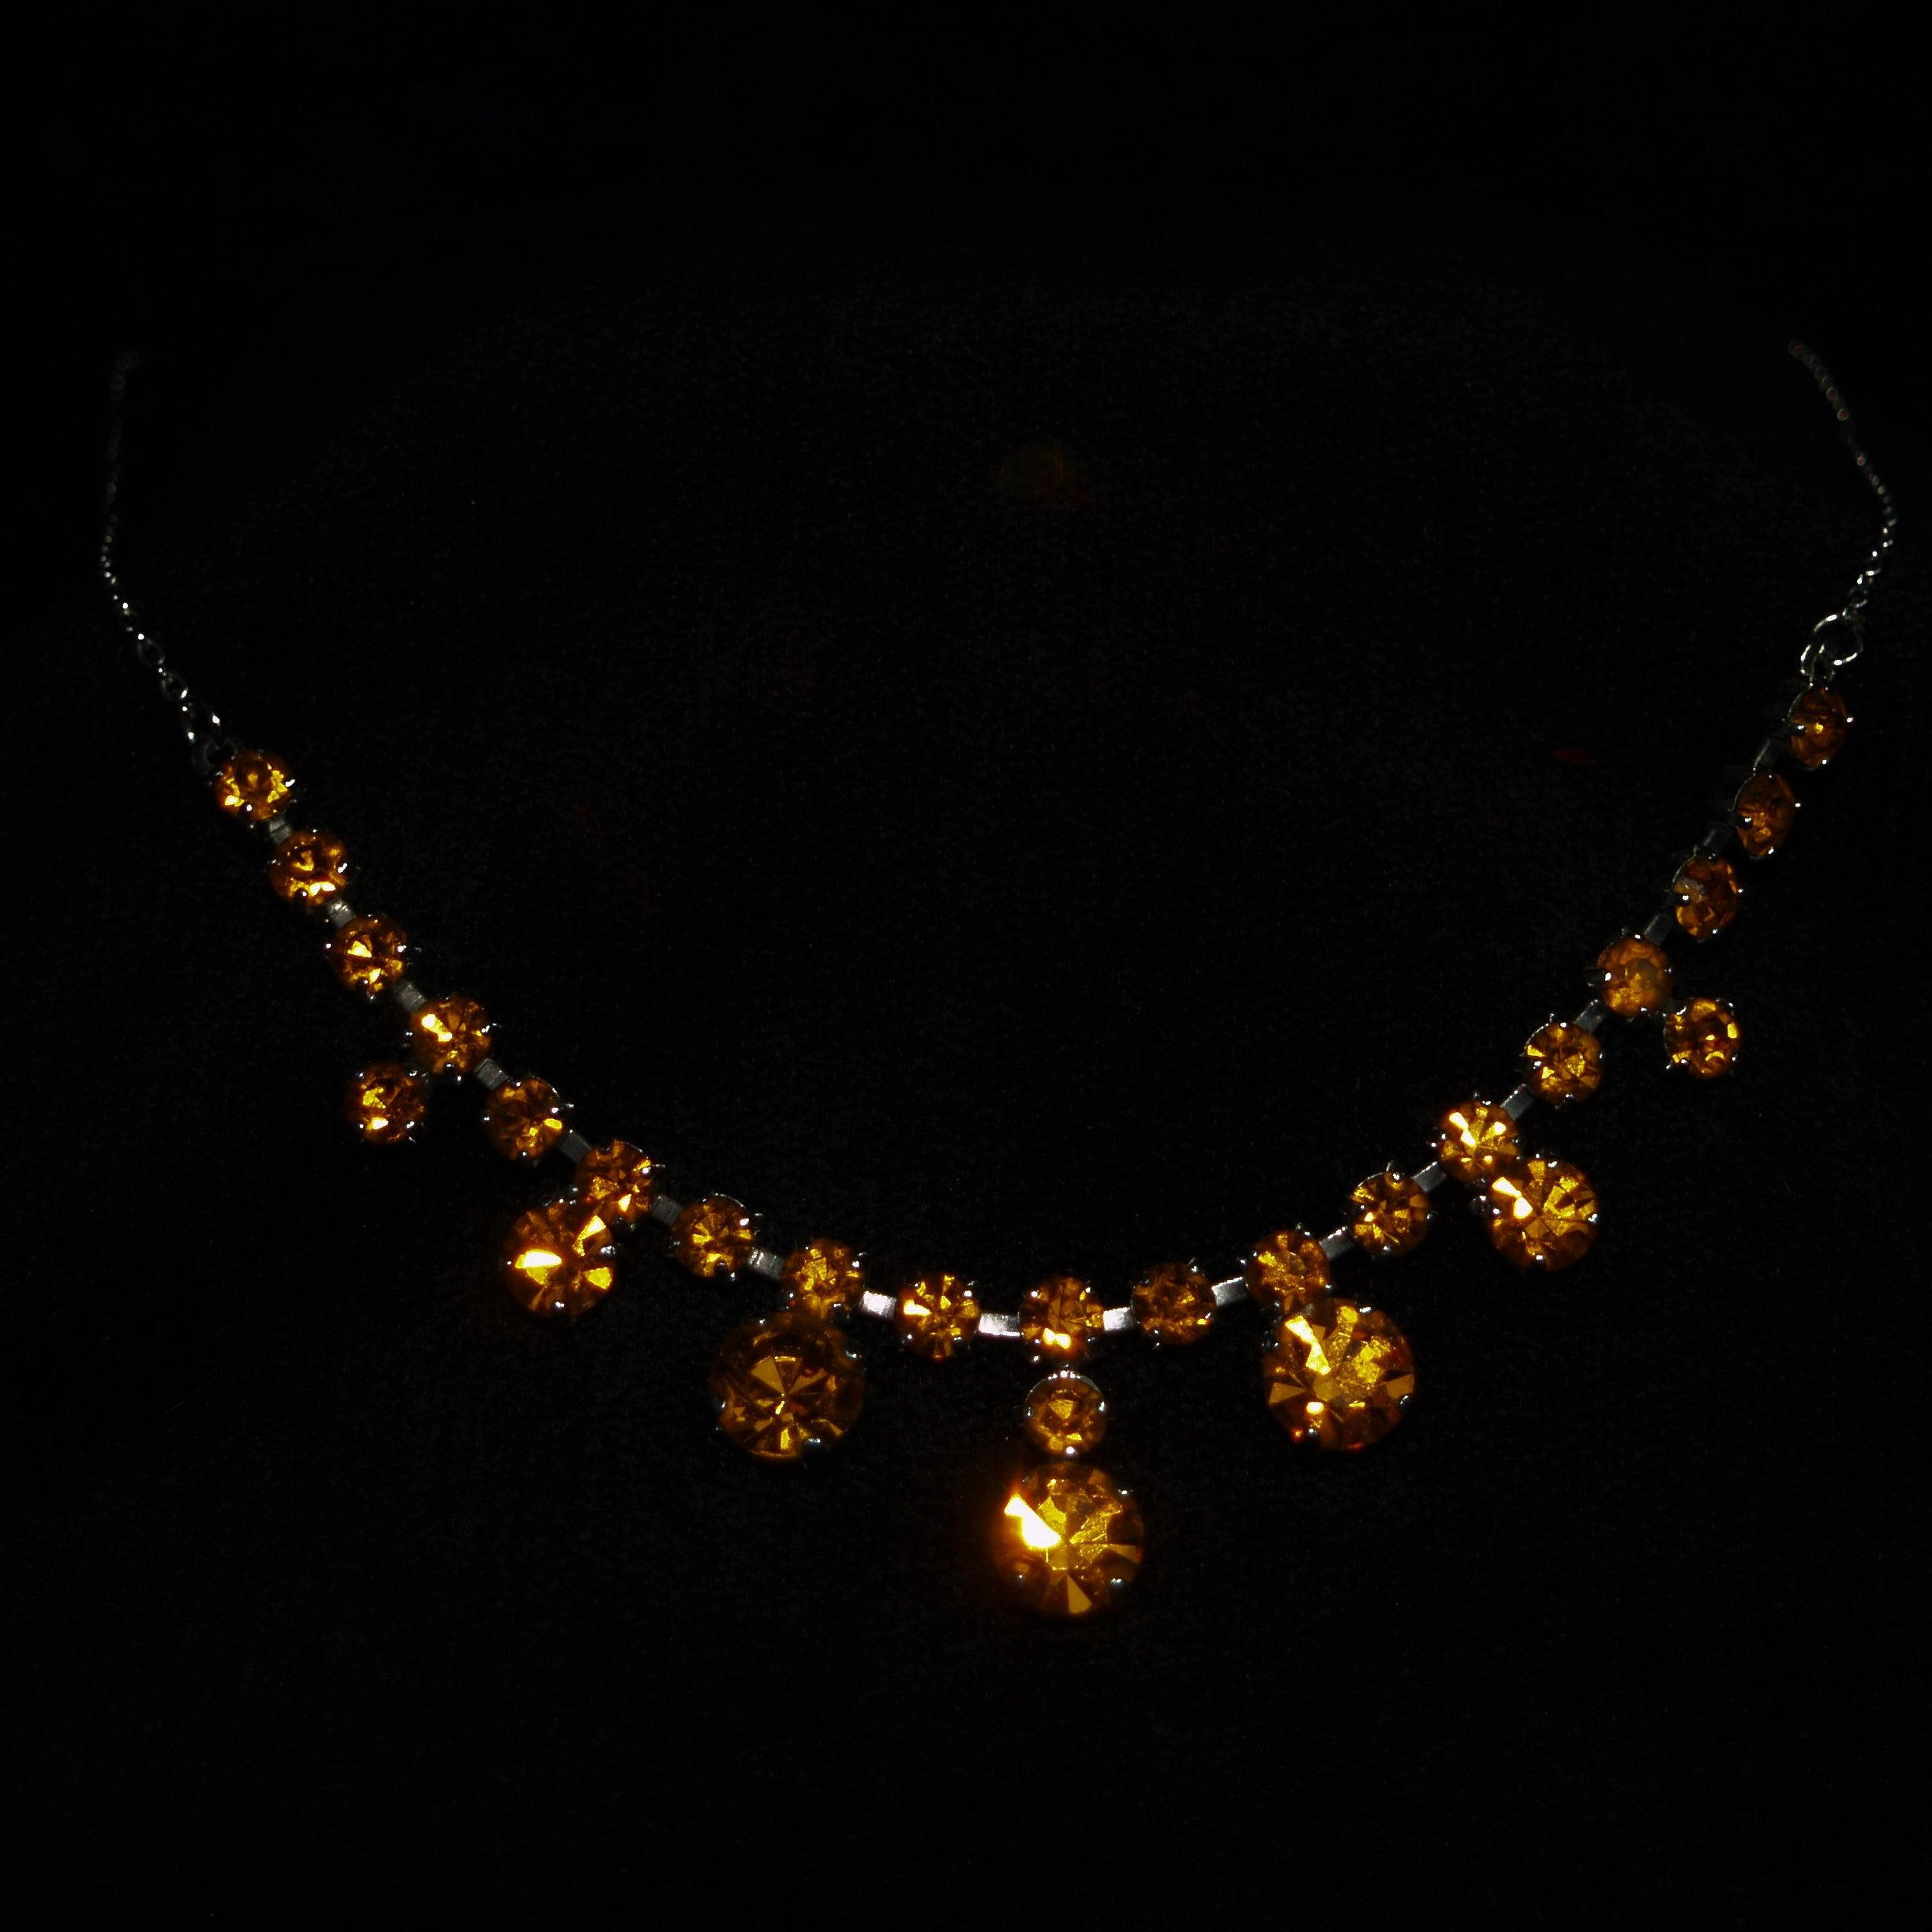 Vintage Chrome Plated Orange Rhinestone Fringe Necklace.